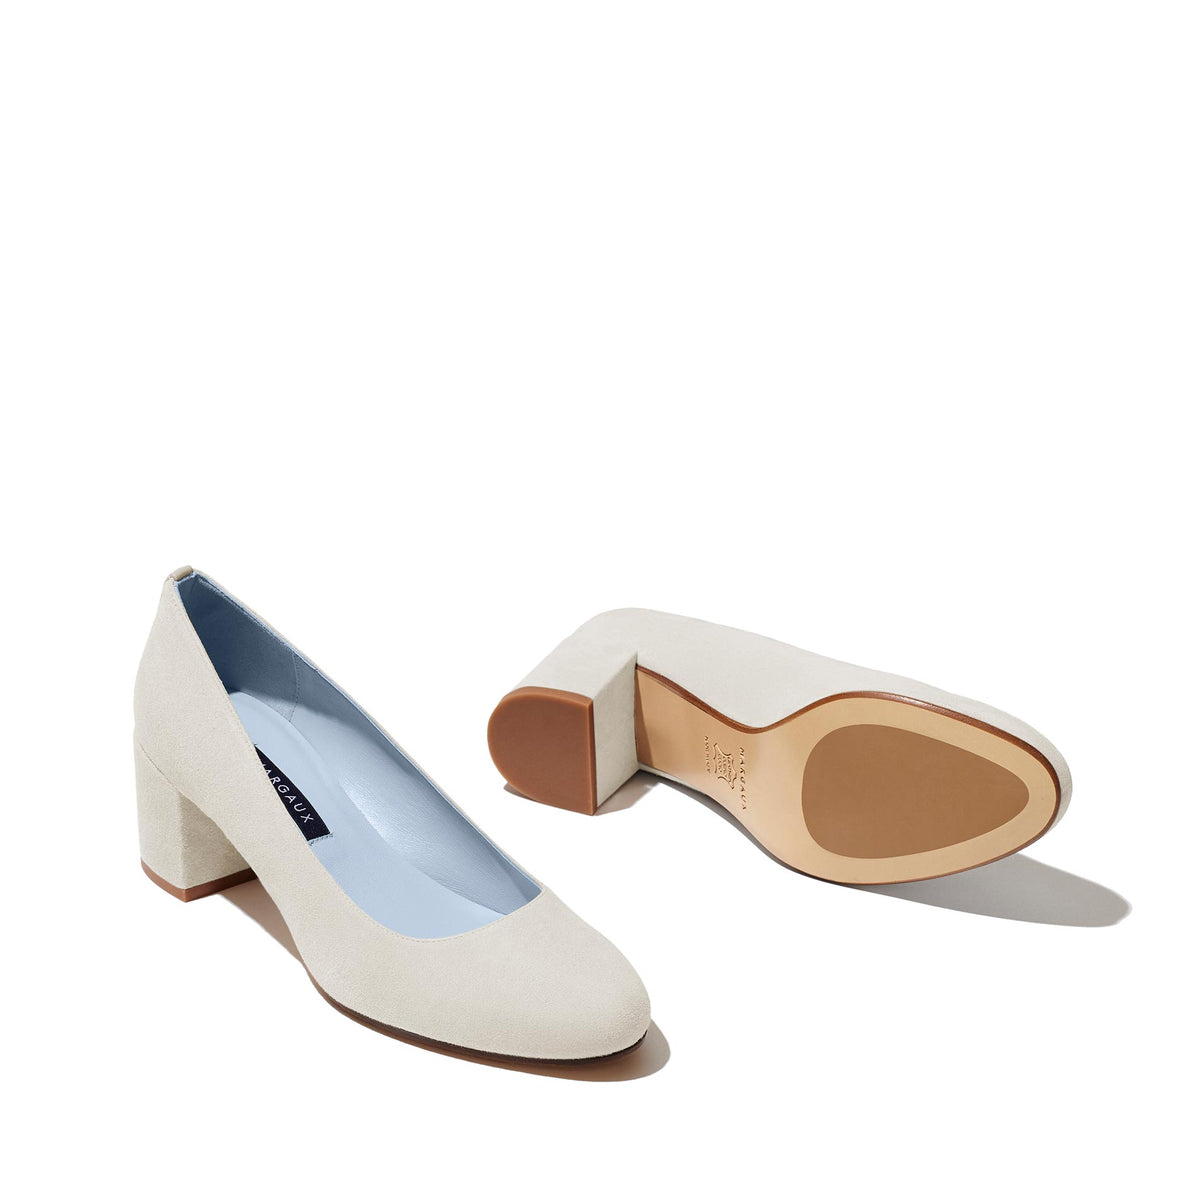 Made-To-Order Bridal: The Heel  in Ivory Suede